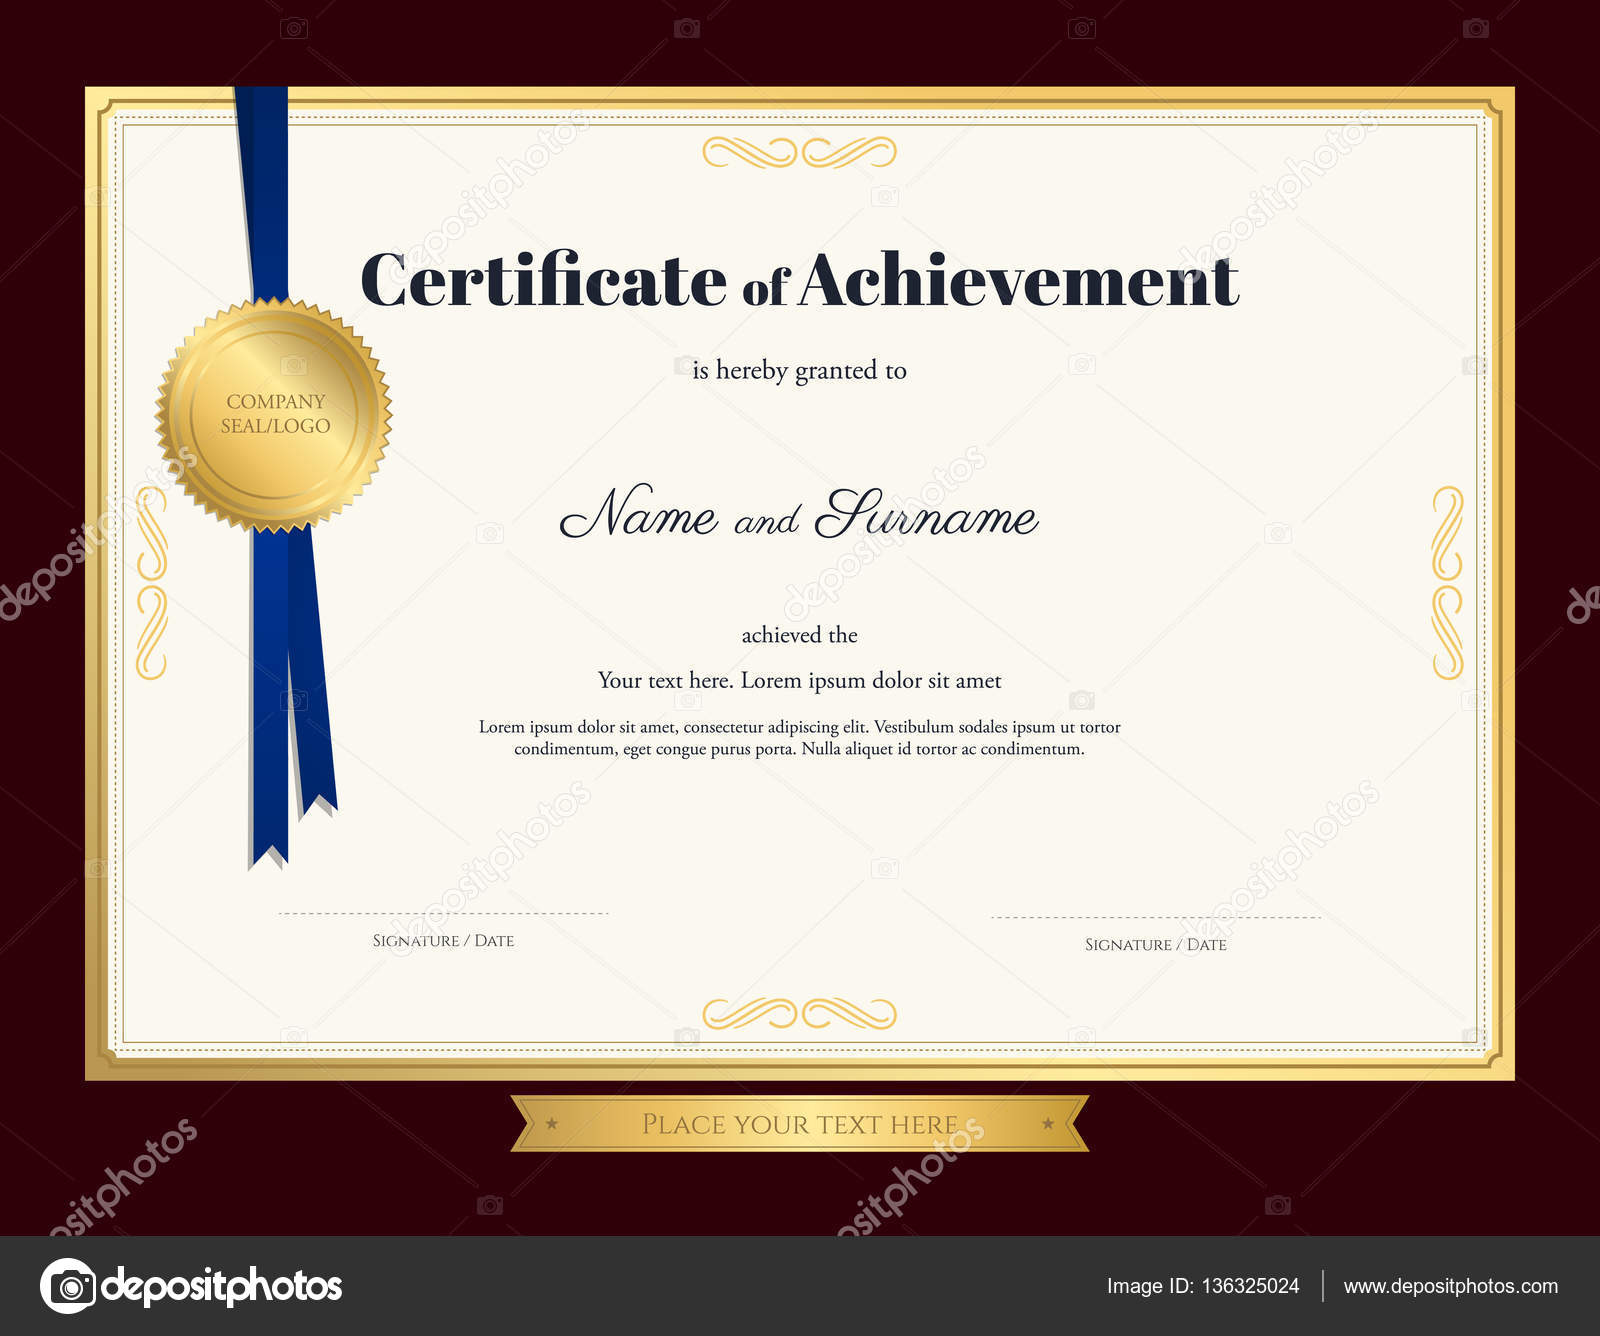 Certificate of Achievement Template  32 Word Templates